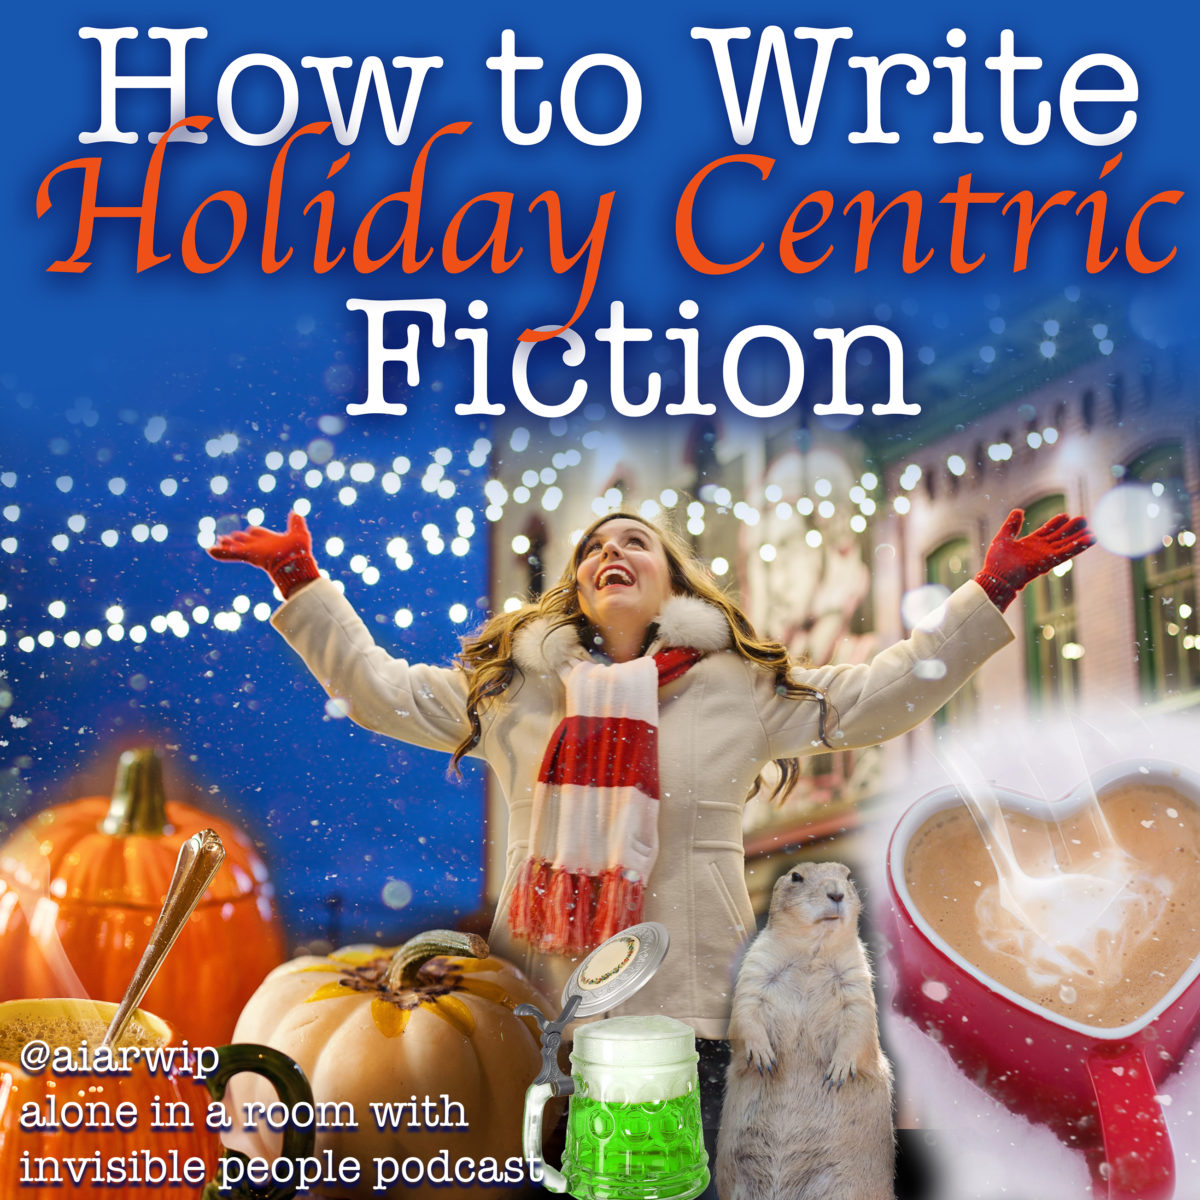 Episode 86: How to Write Holiday Based Stories